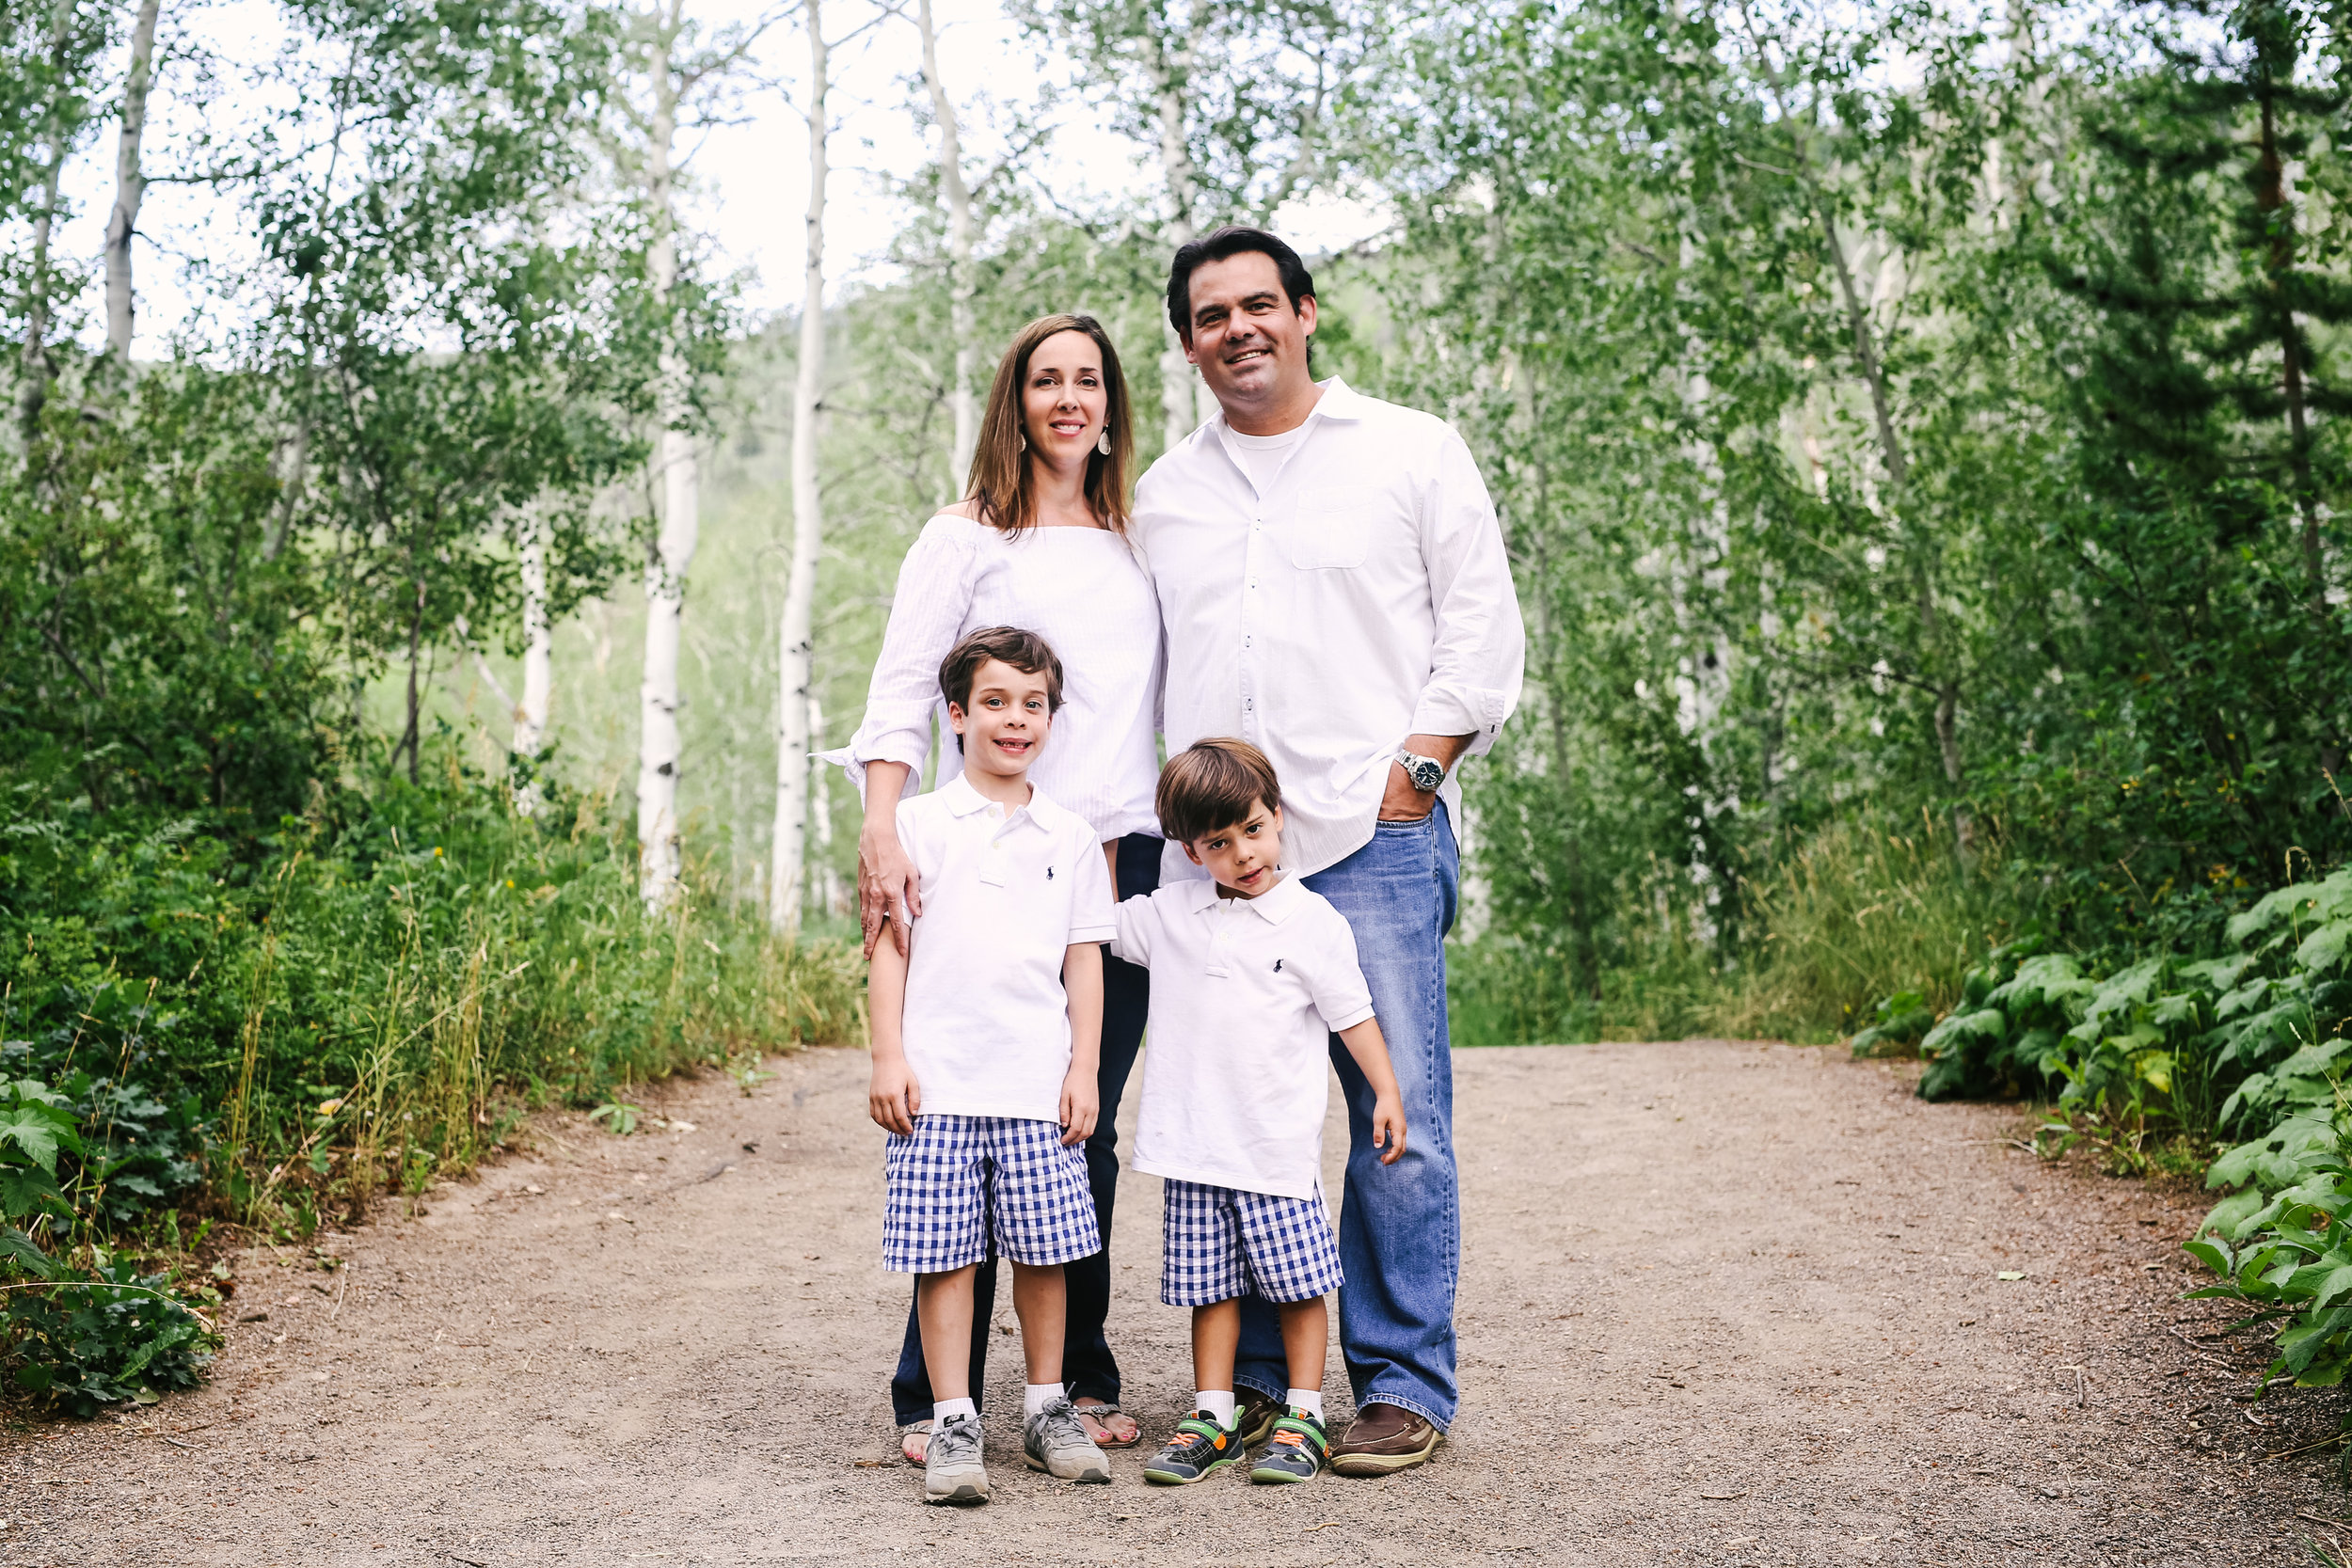 daniellezimmererphotography.familyphotos.steamboatspringsvacationphotography